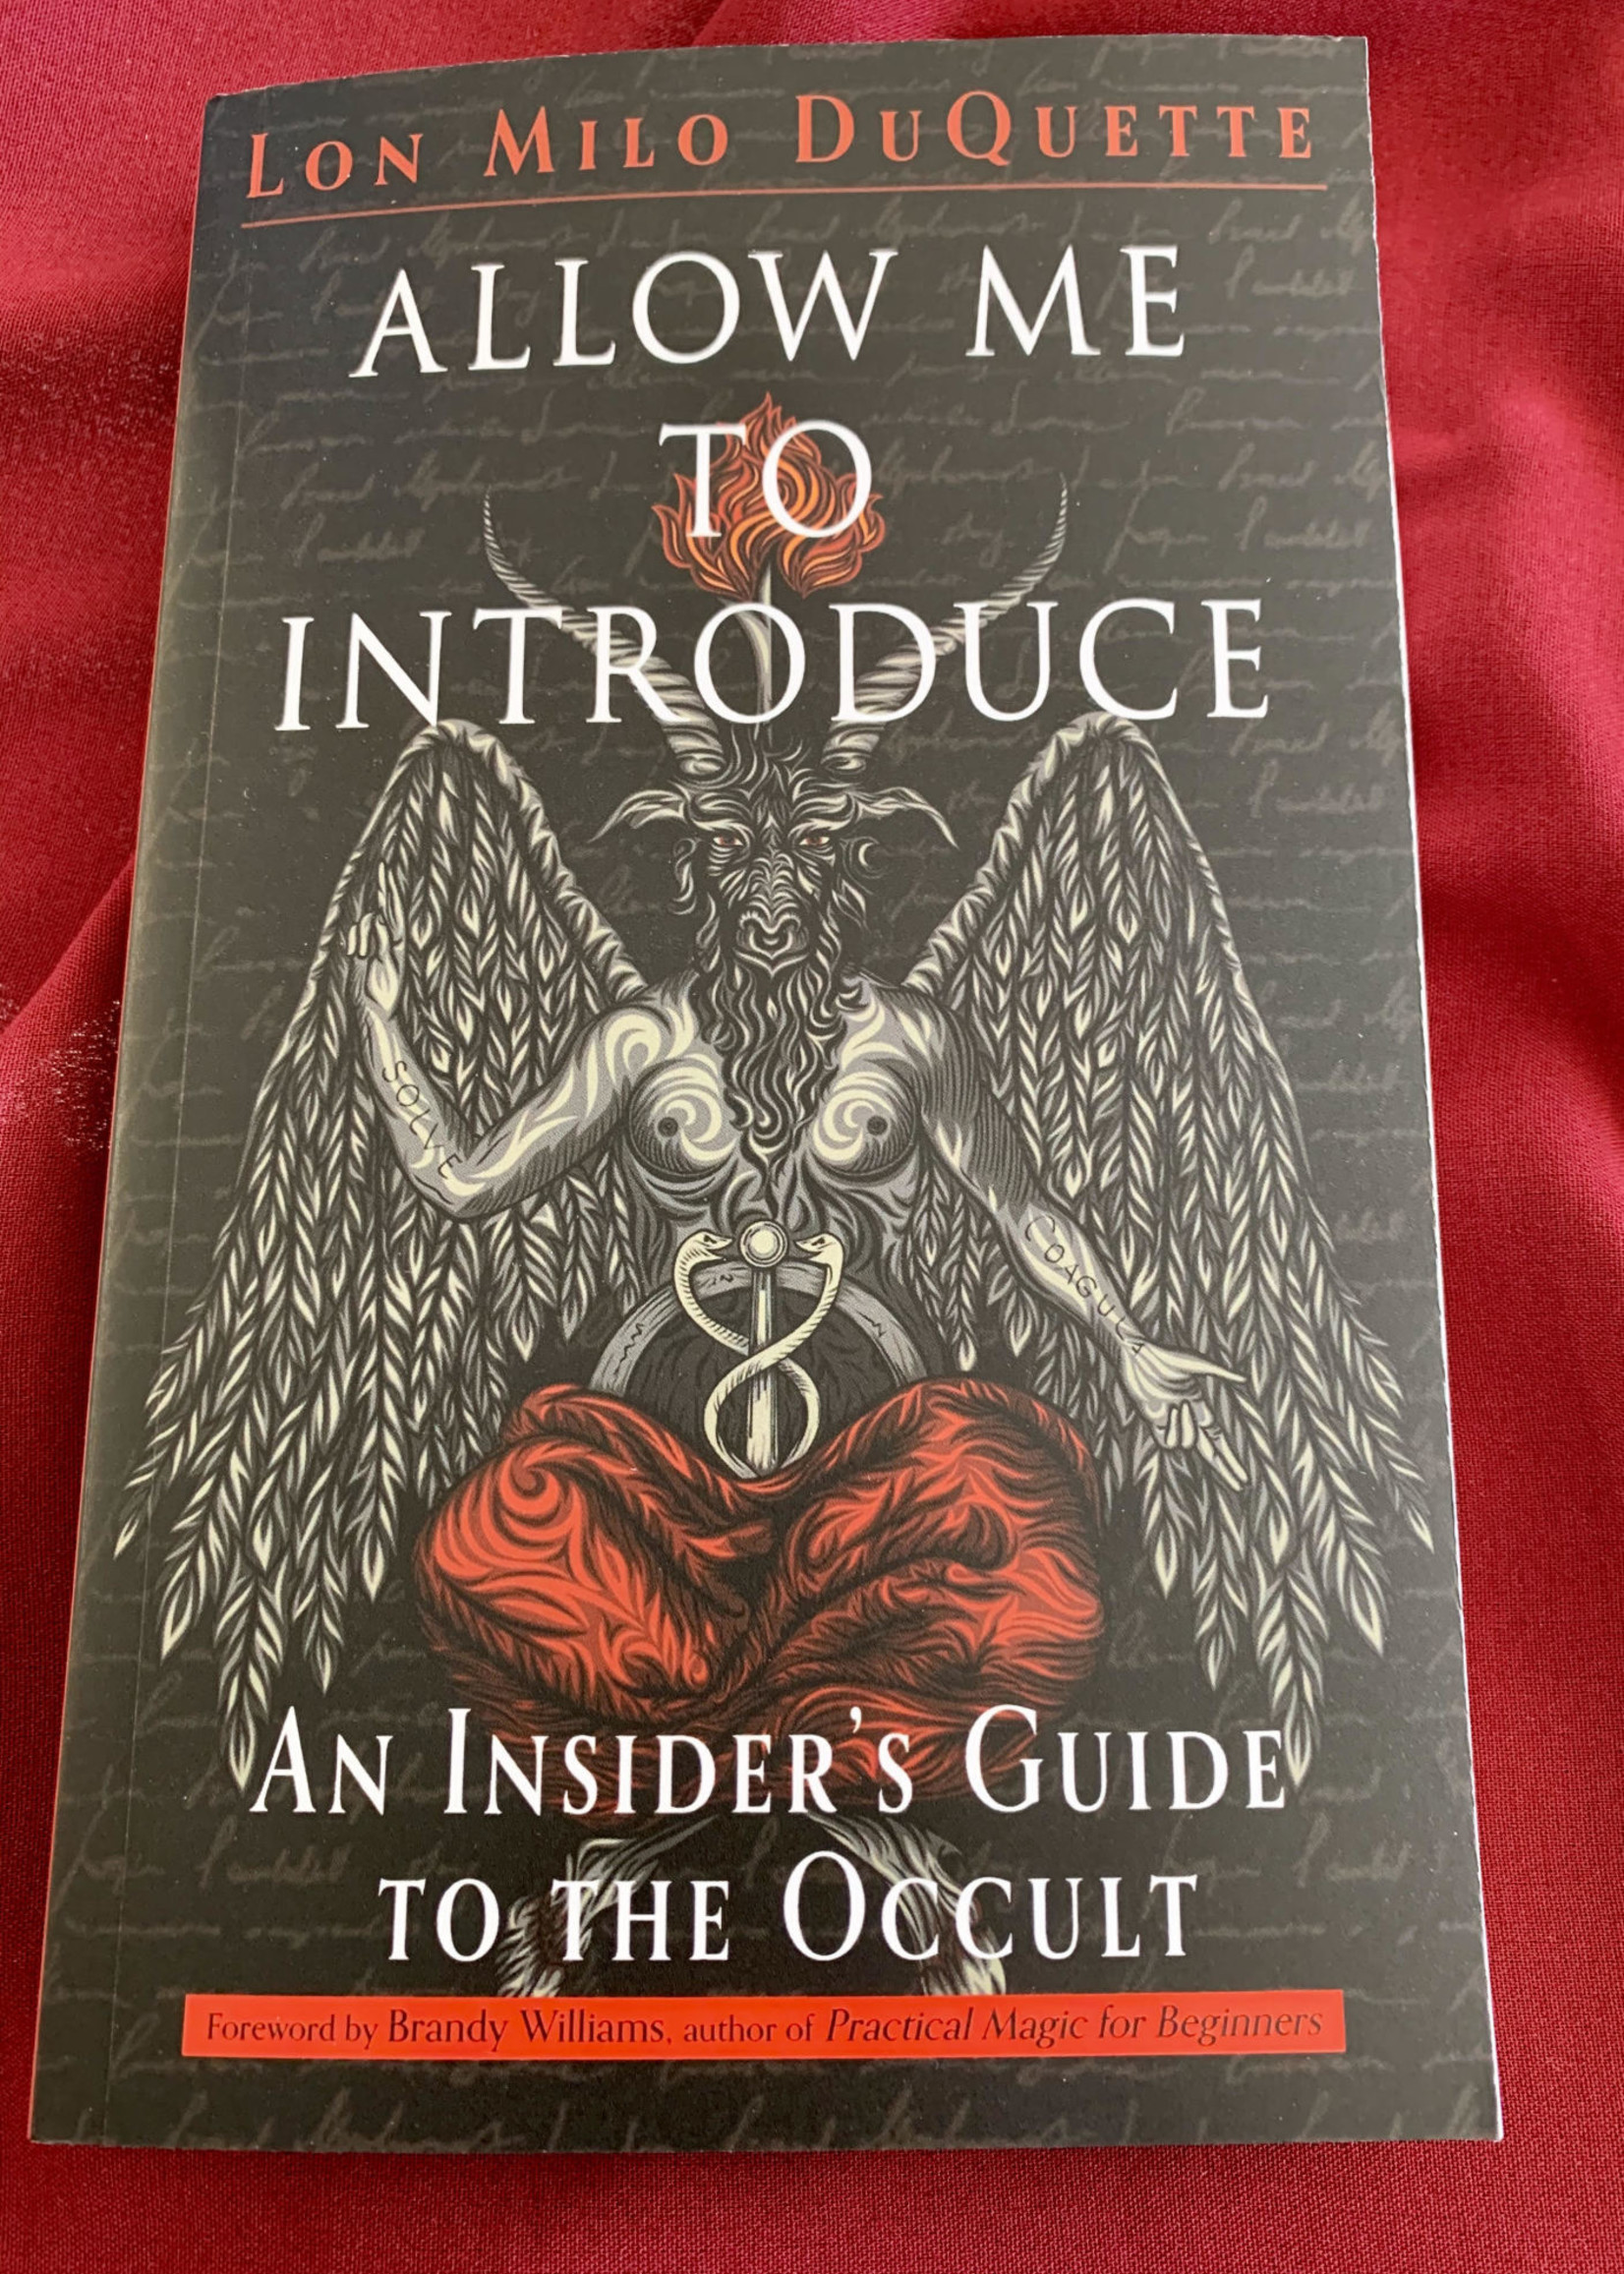 Allow Me to Introduce An Insider's Guide to the Occult